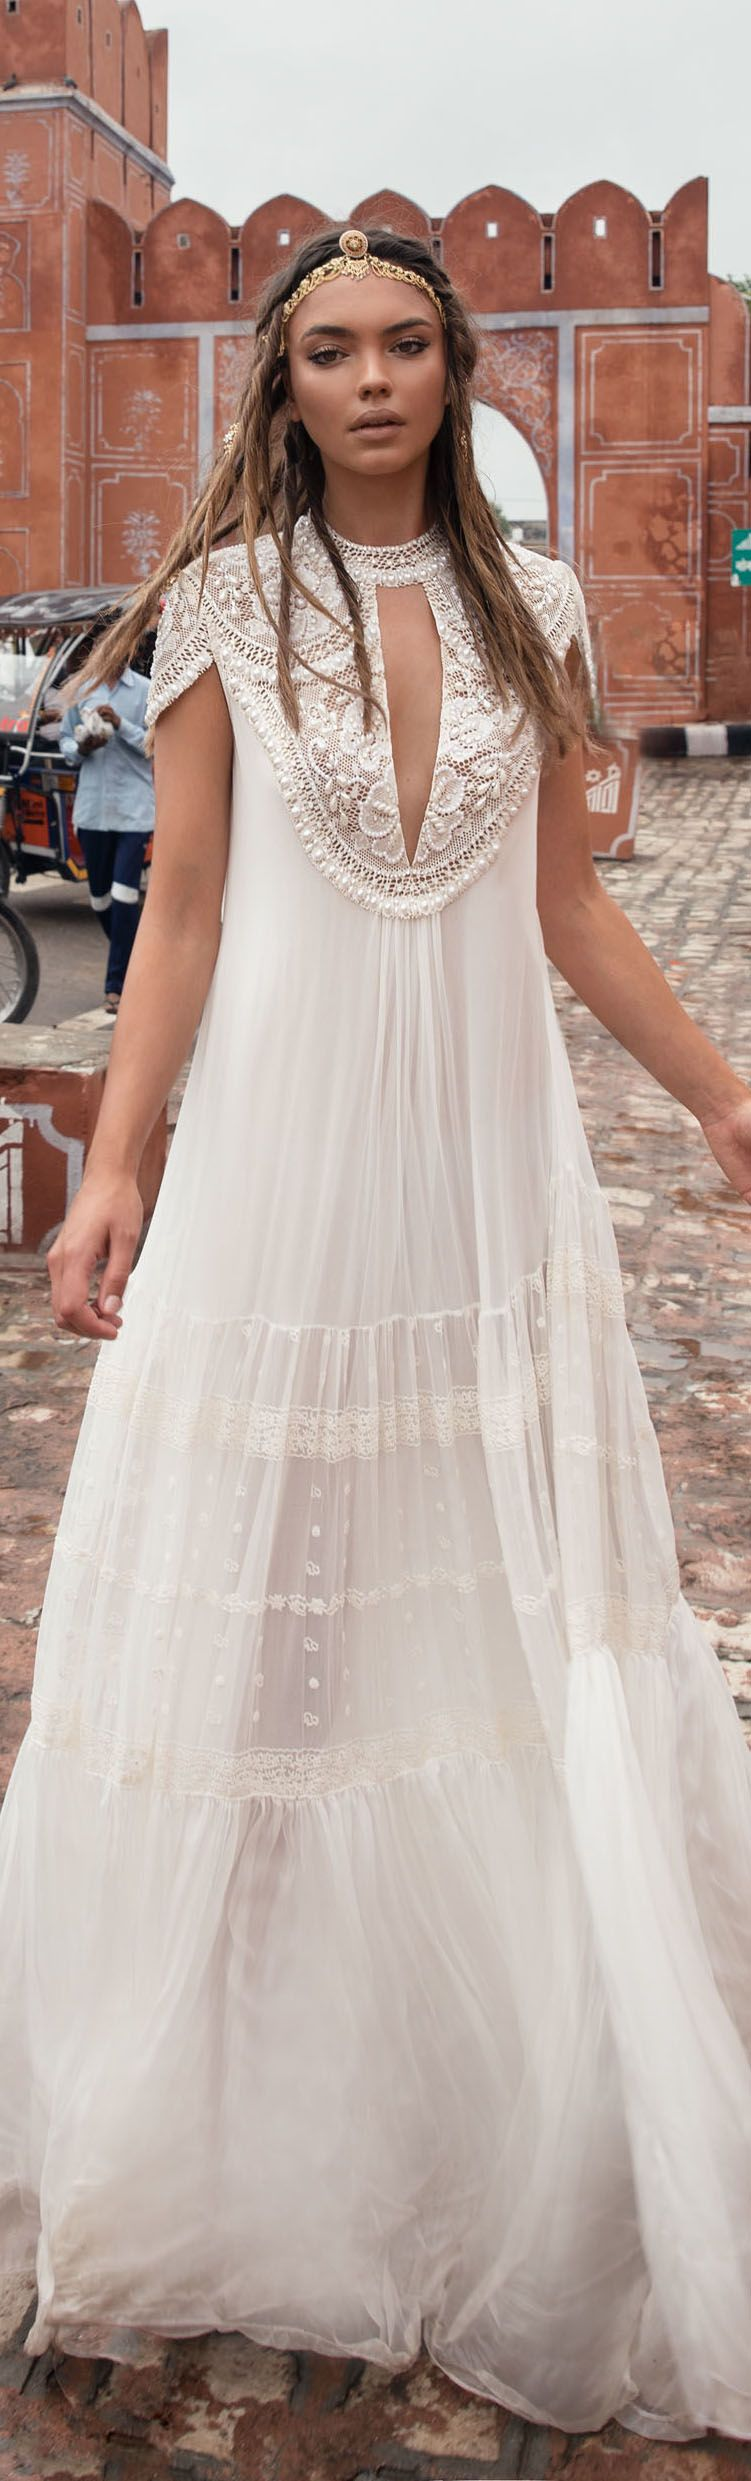 Boho hippie wedding dress  Bohemian wedding dress from Carchy  Vestida Pra Casar  Pinterest